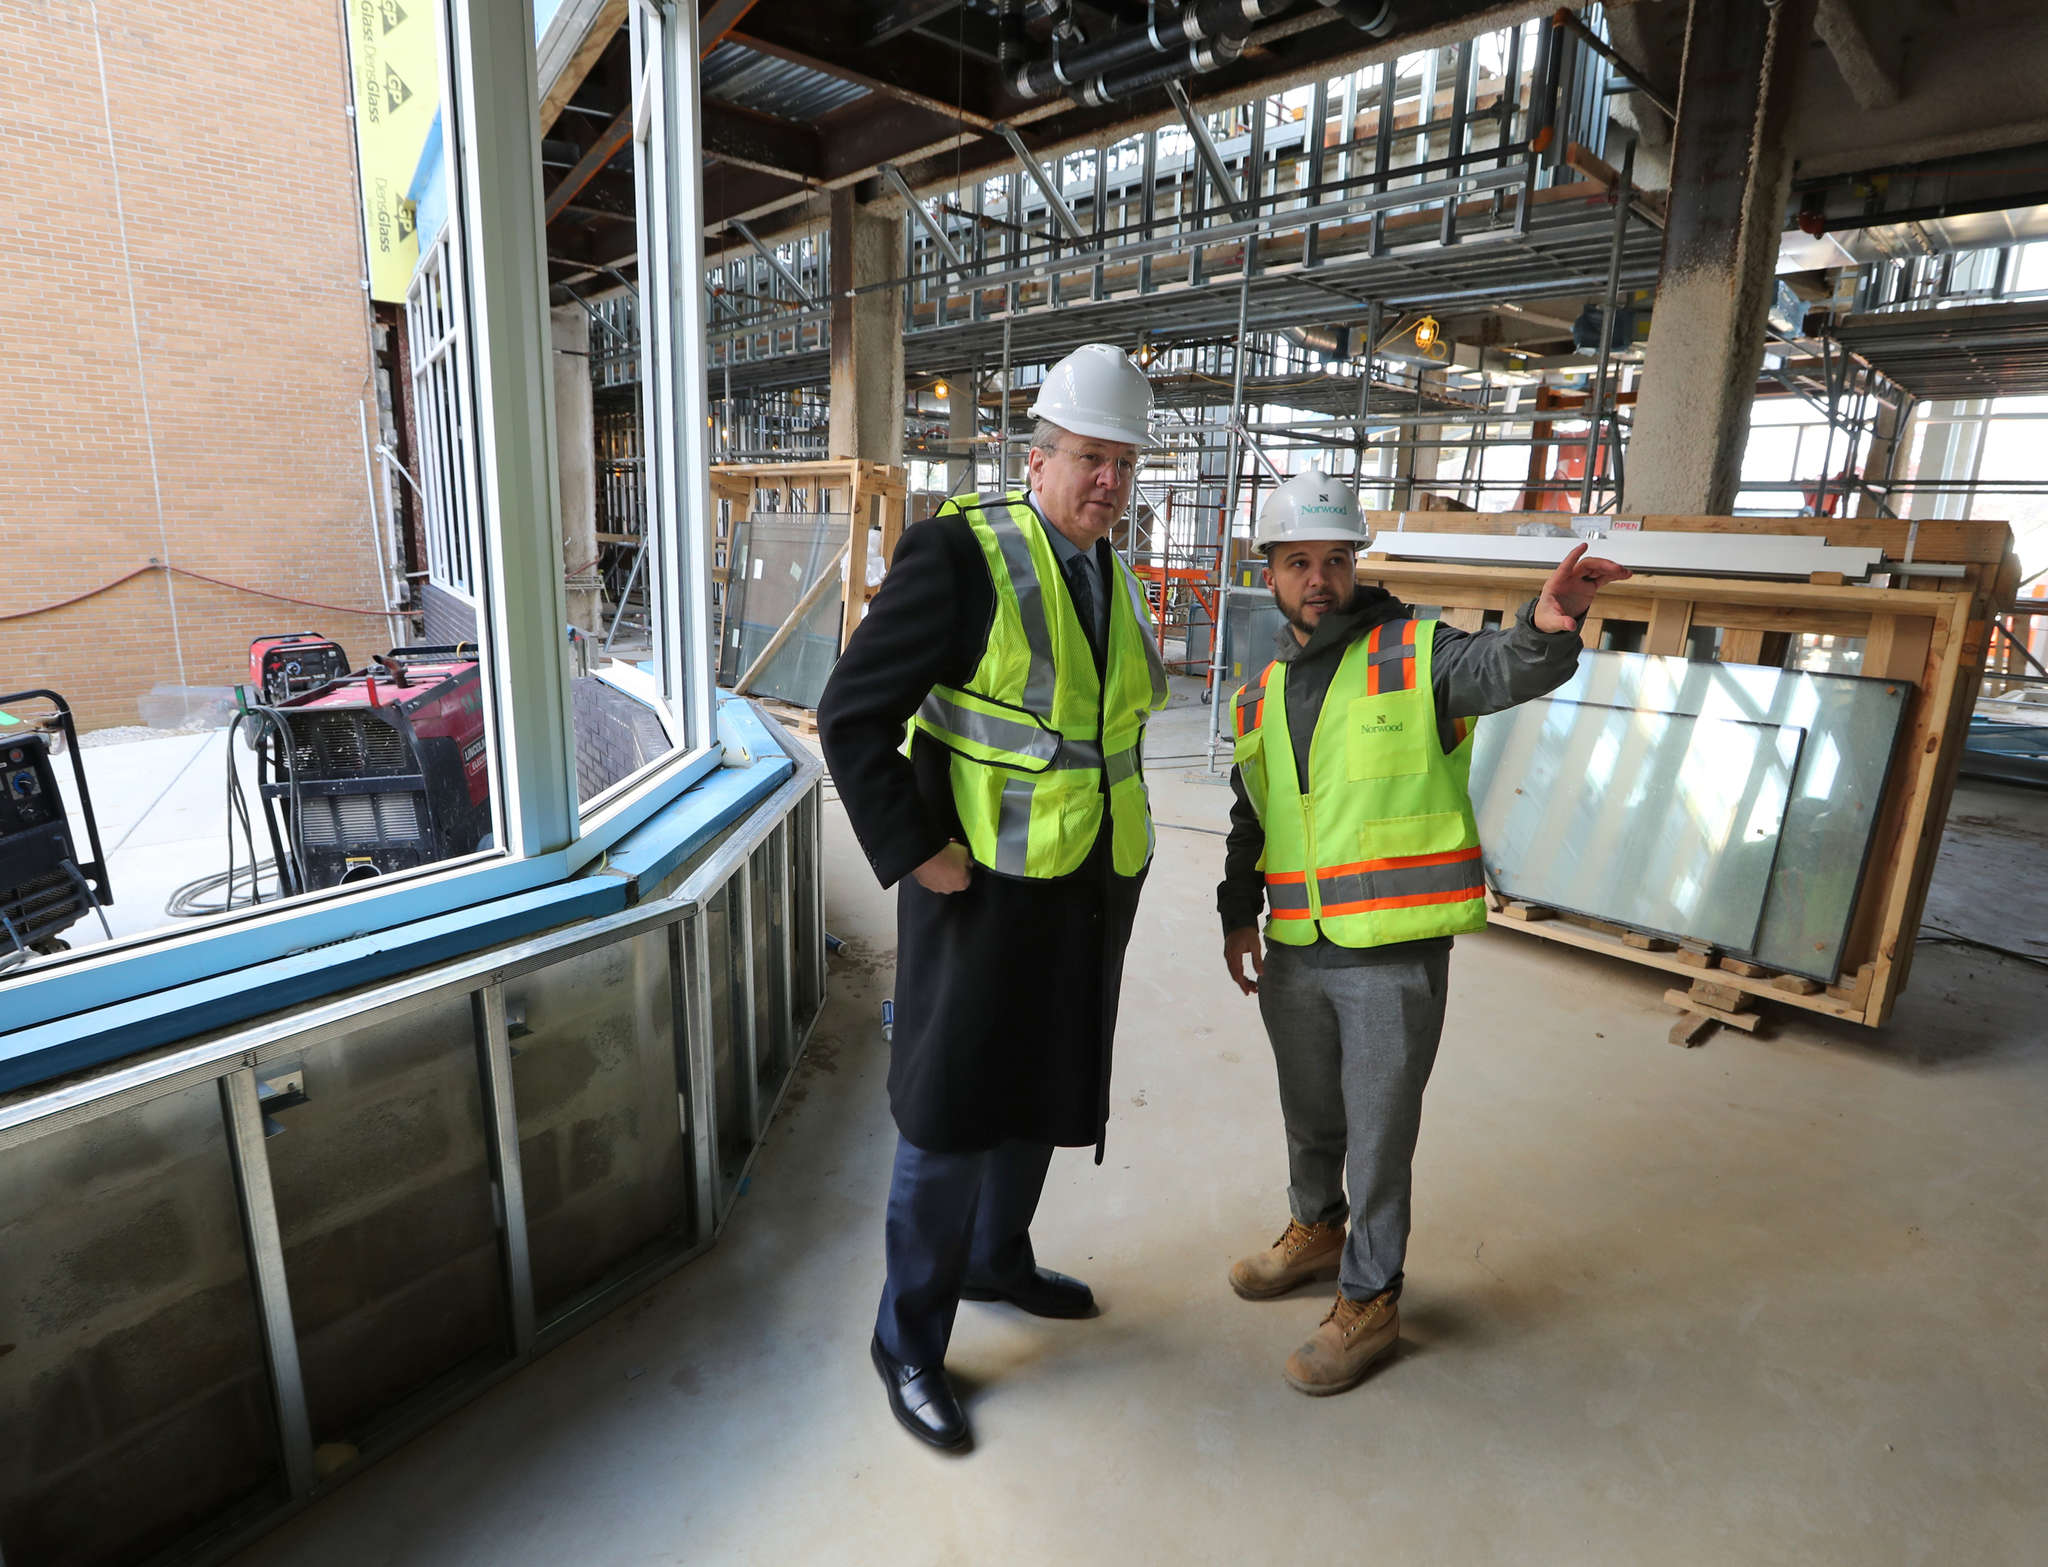 Touring the construction site are Joseph W. Devine (left), Kennedy Health CEO and president, and project manager Ryan Spotts.